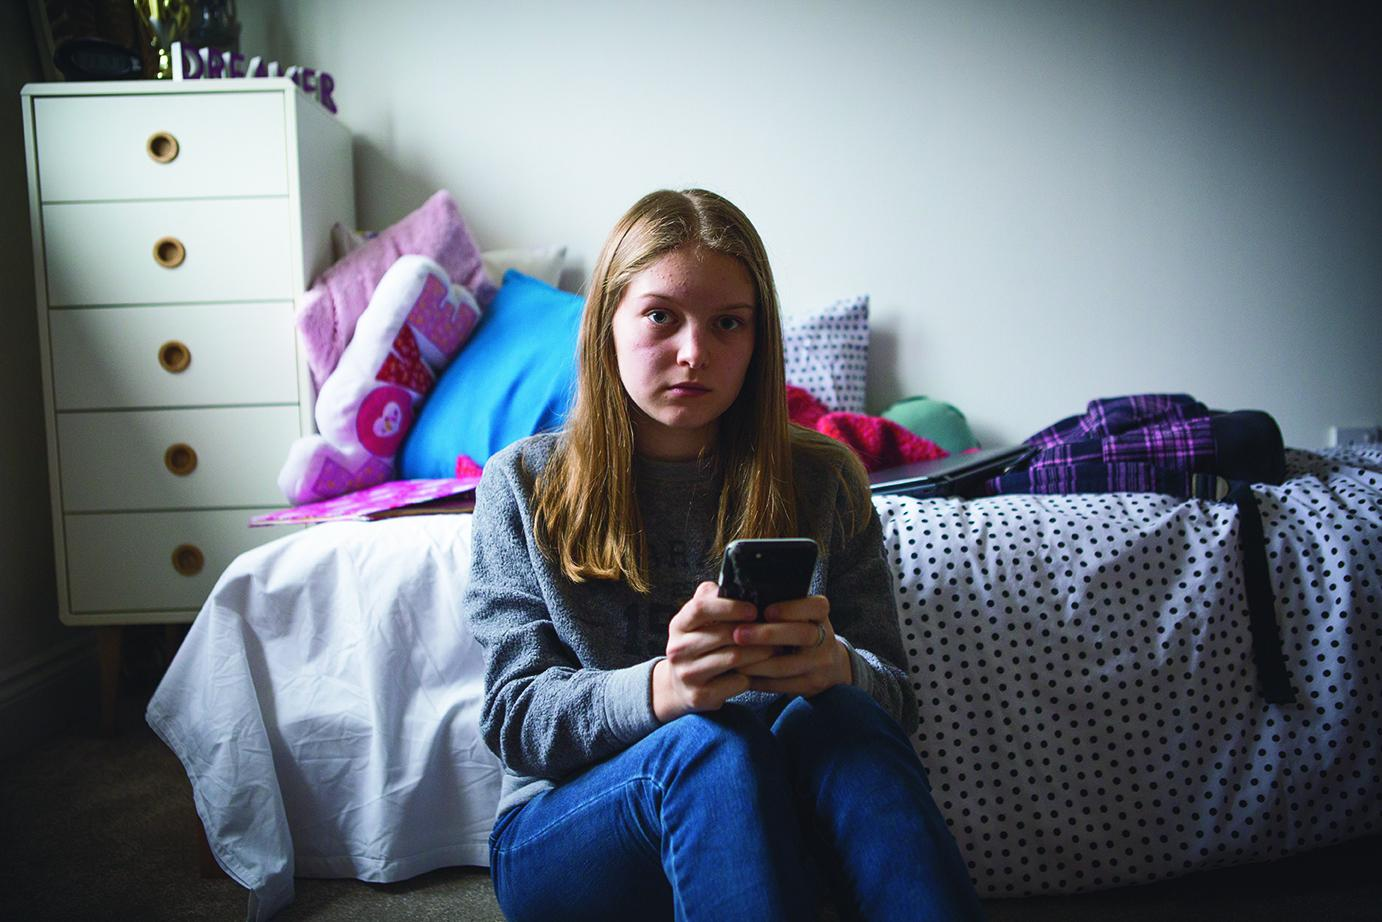 A young girl sitting on the floor of her bedroom holding a mobile phone